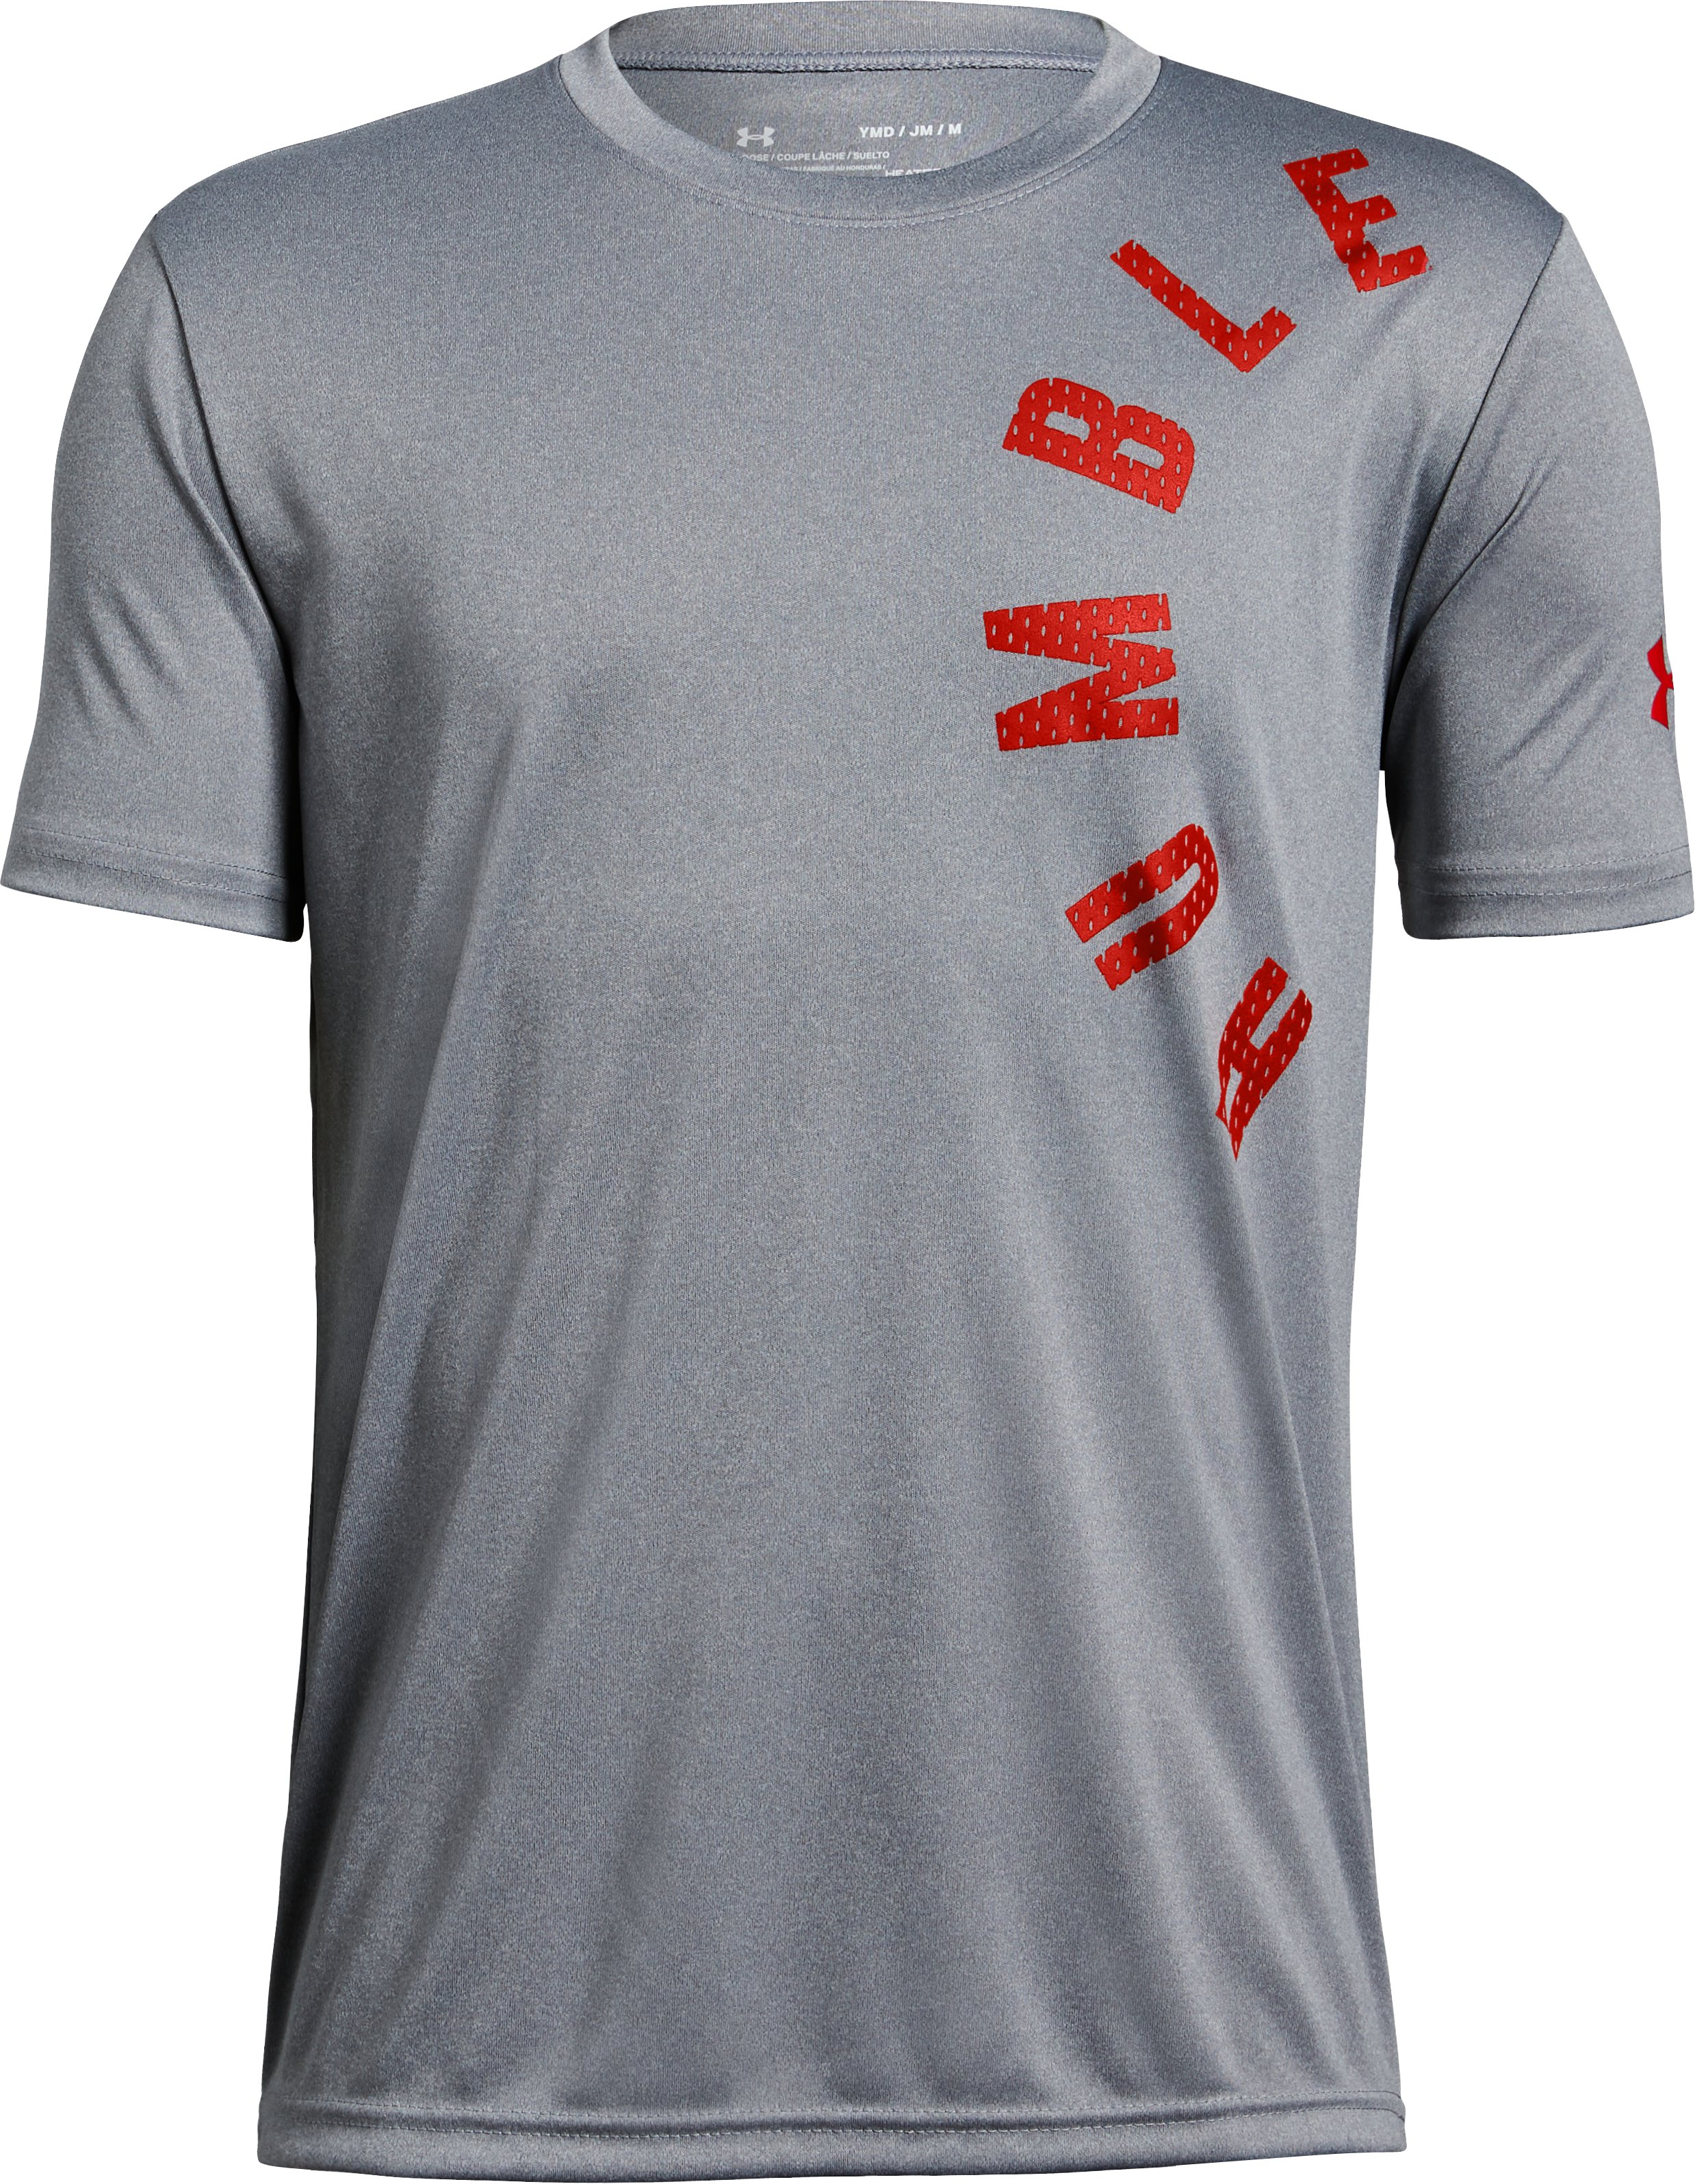 Boys' UA Humble & Hungry Short Sleeve T-Shirt, STEEL LIGHT HEATHER,